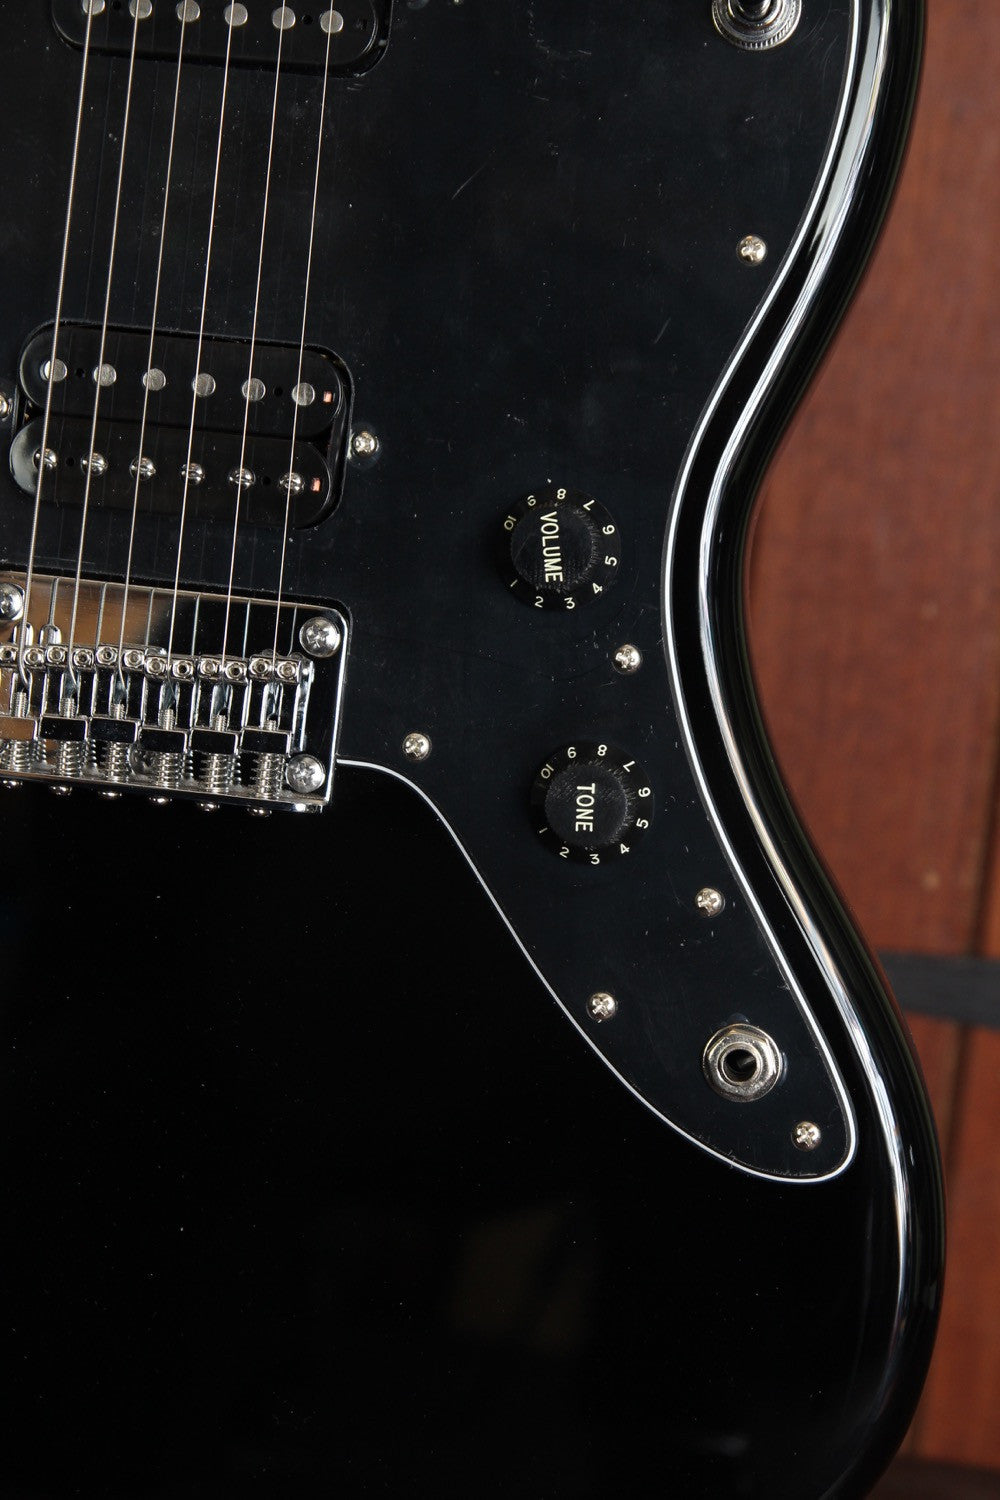 *NEW ARRIVAL* Squier Squier Affinity Jazzmaster HH Electric Guitar Black